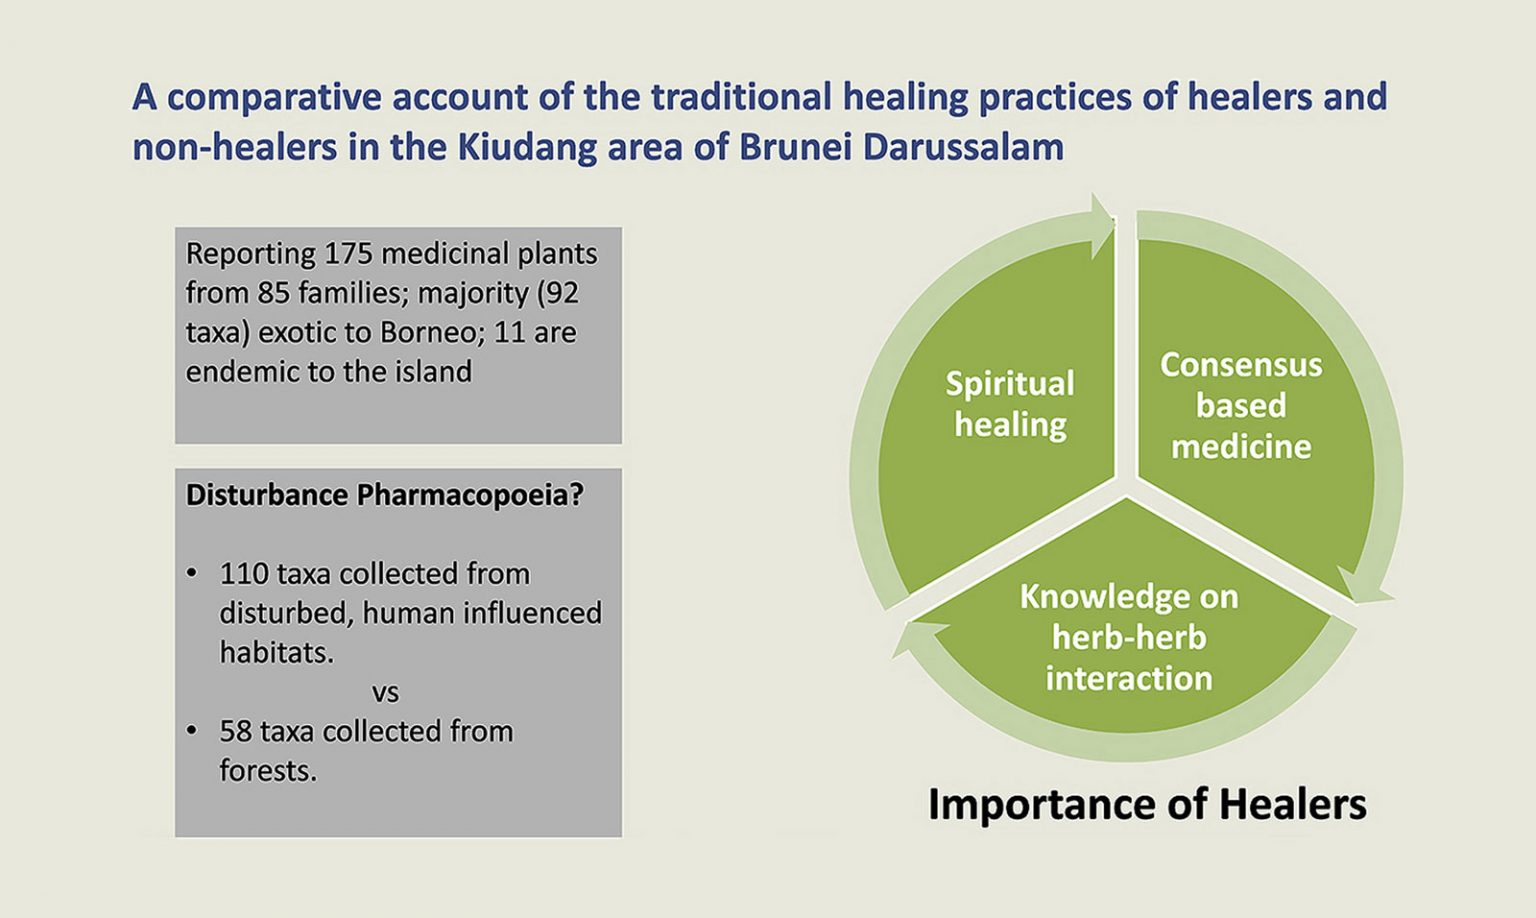 New Article on Traditional Healers and Medicinal Plants in Brunei